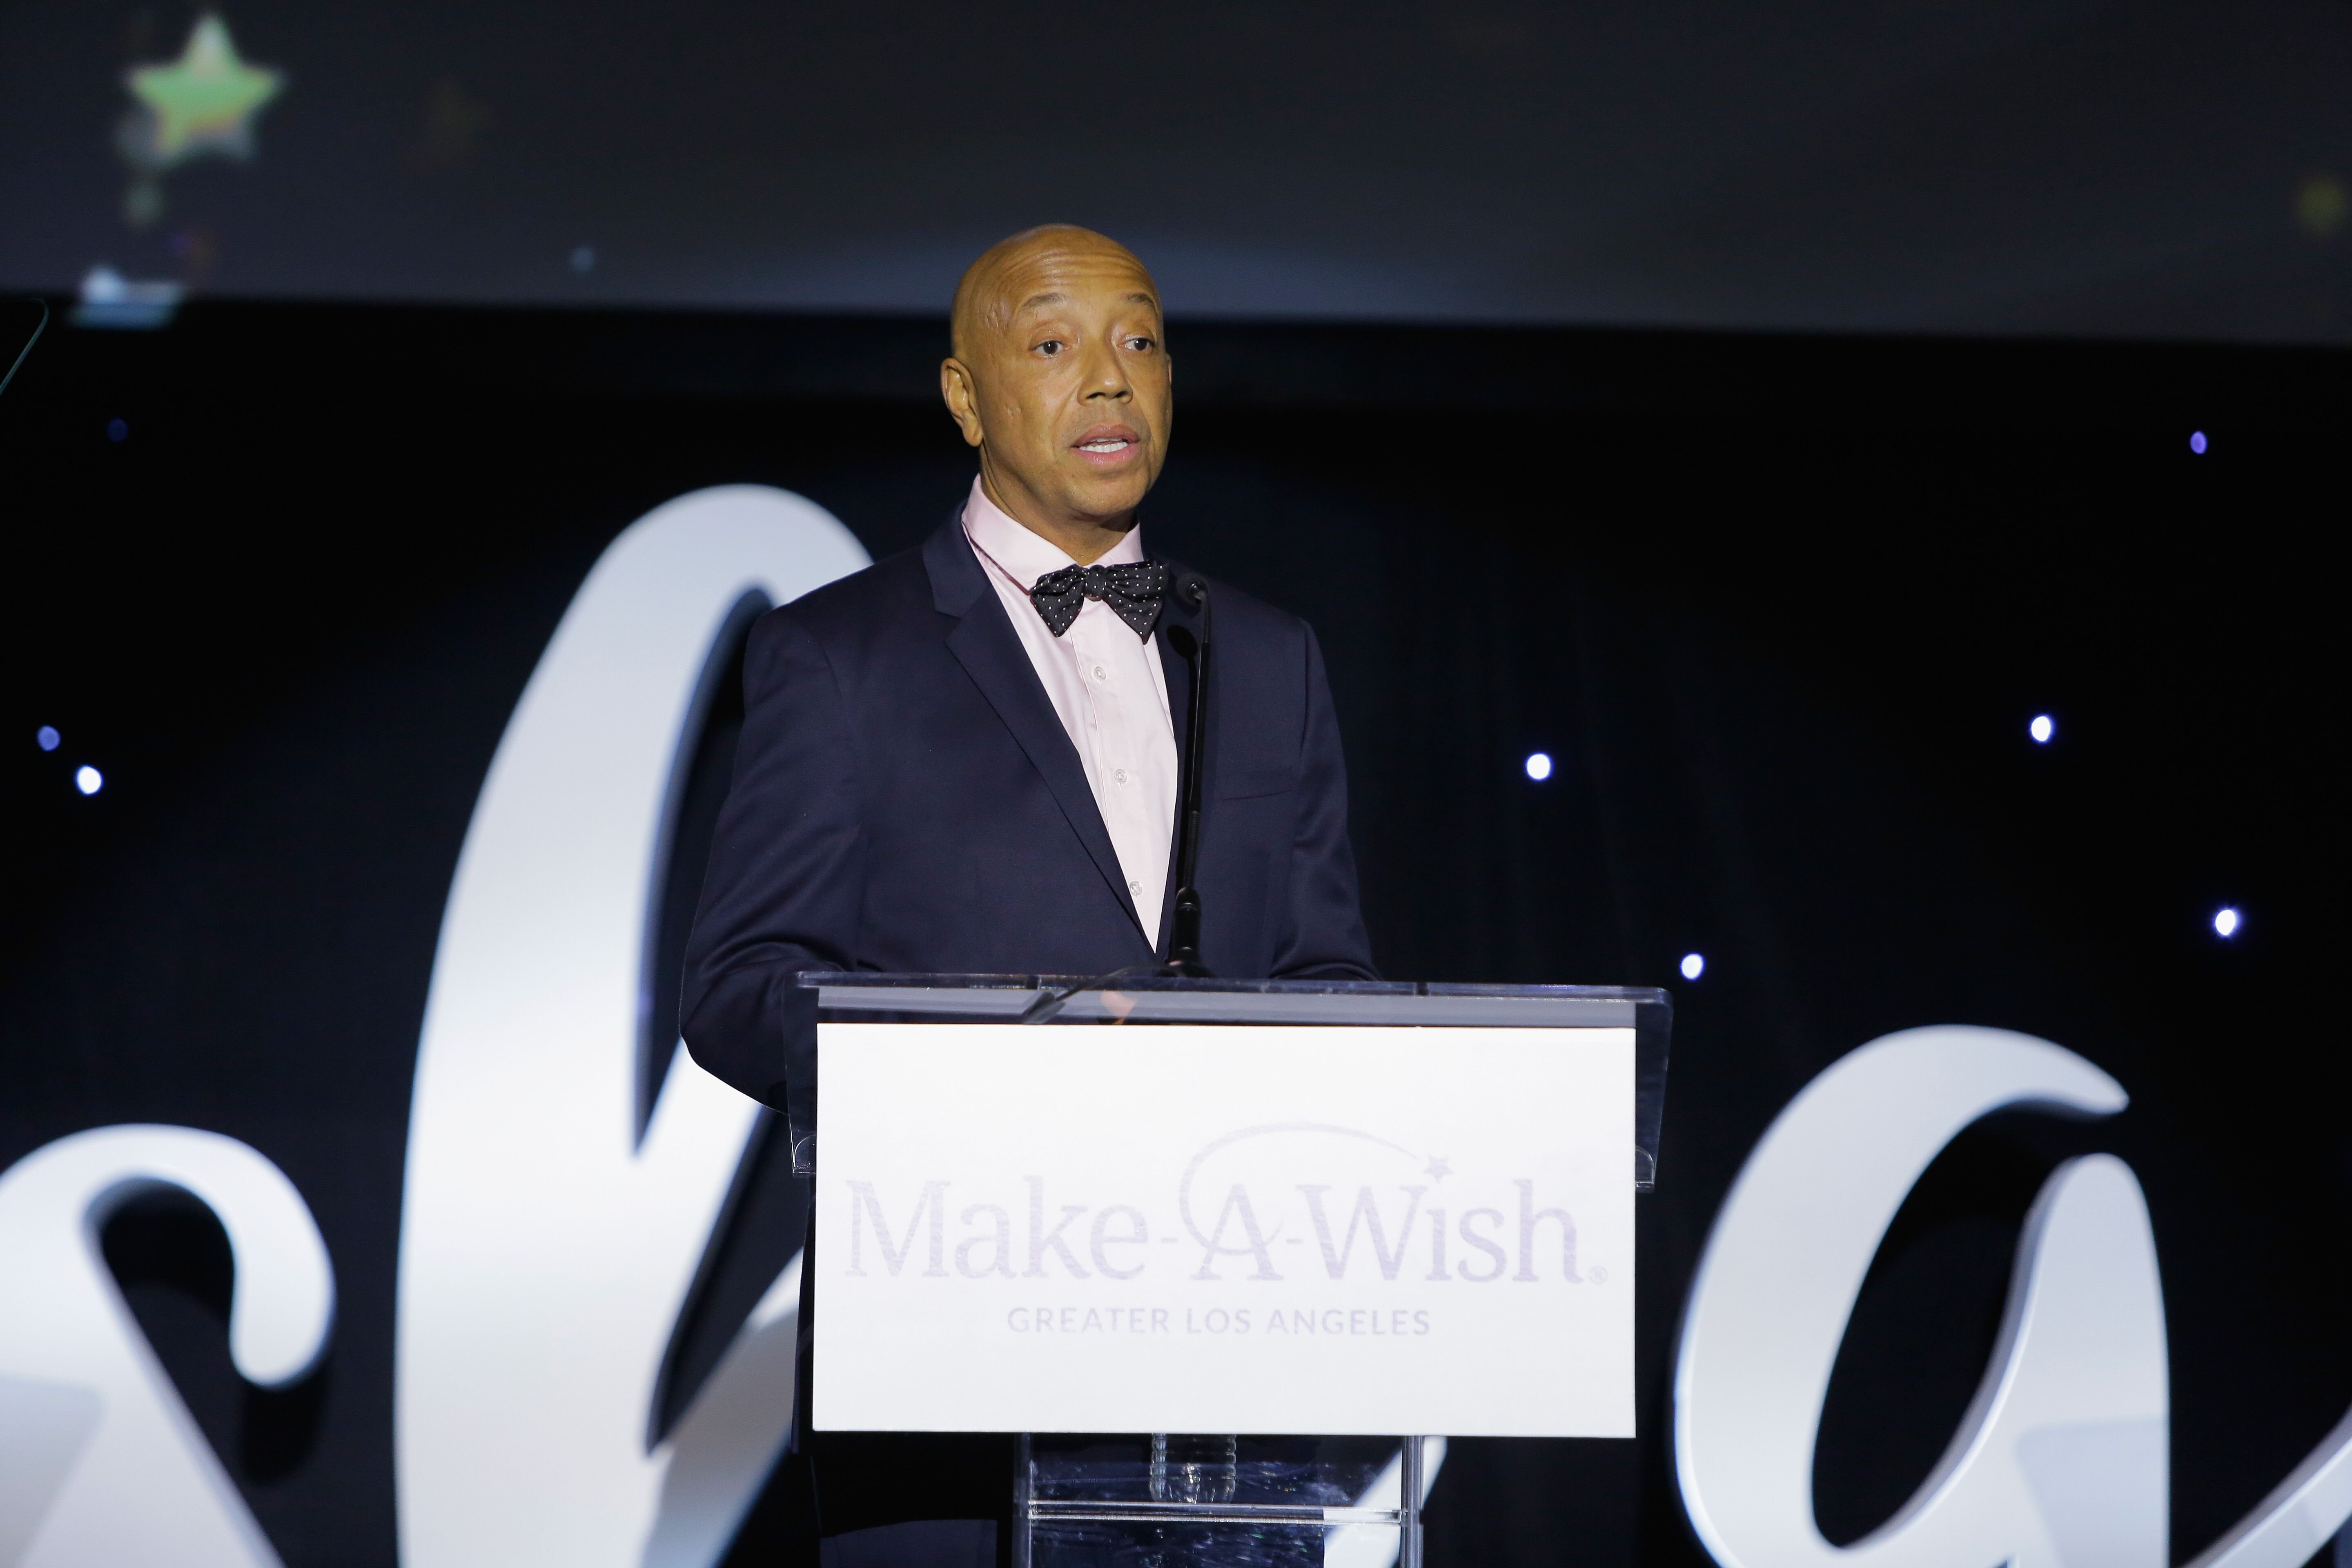 Russell Simmons at a Make A Wish Foundation event | Source: Getty Images/GlobalImagesUkraine